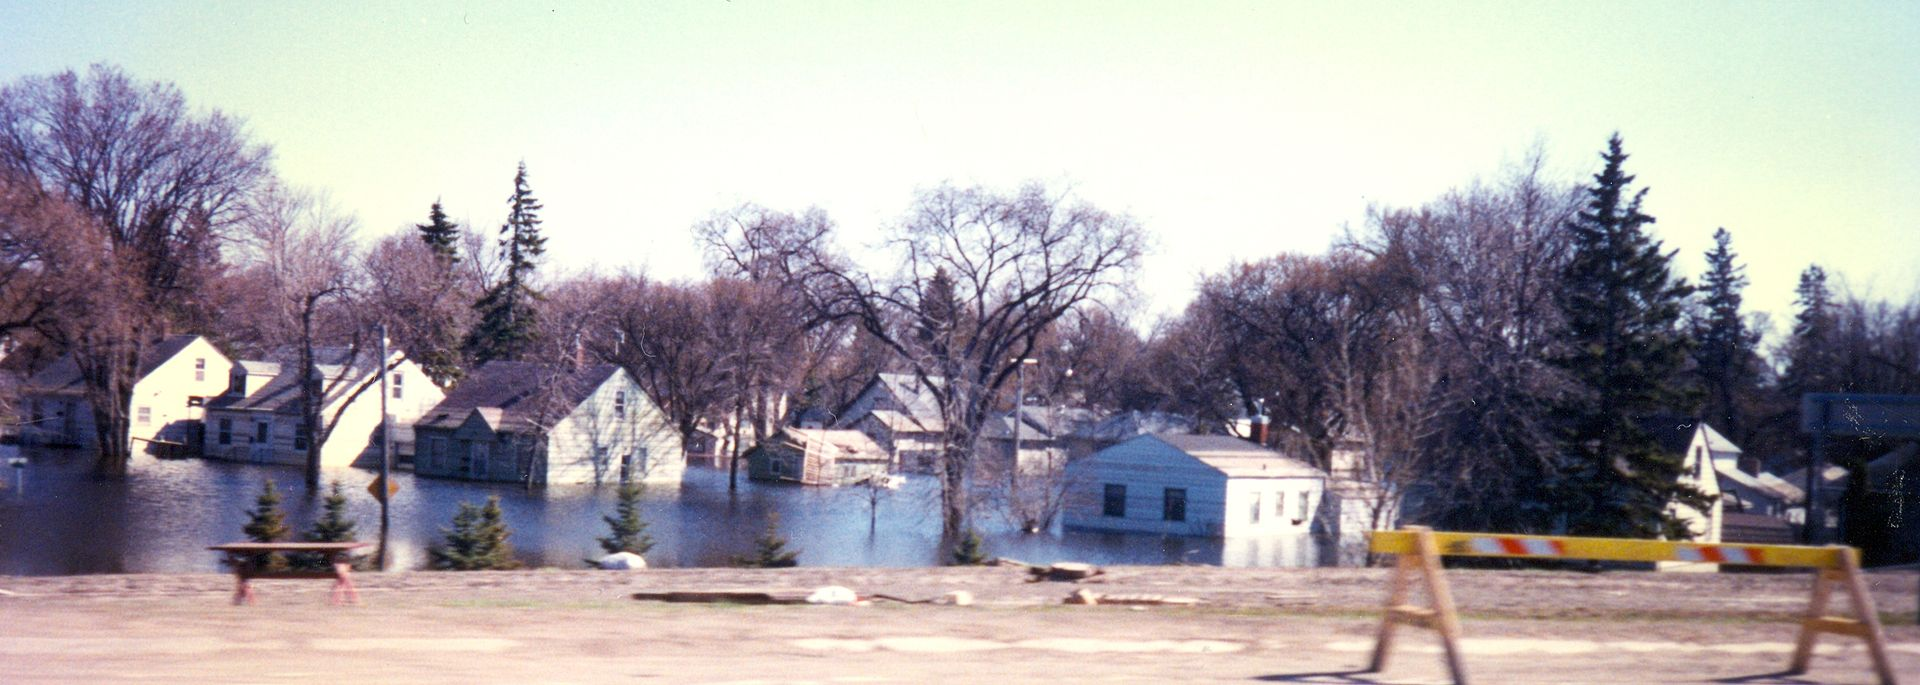 A residential neighborhood in East Grand Forks (Minnesota) flooded in late April 1997